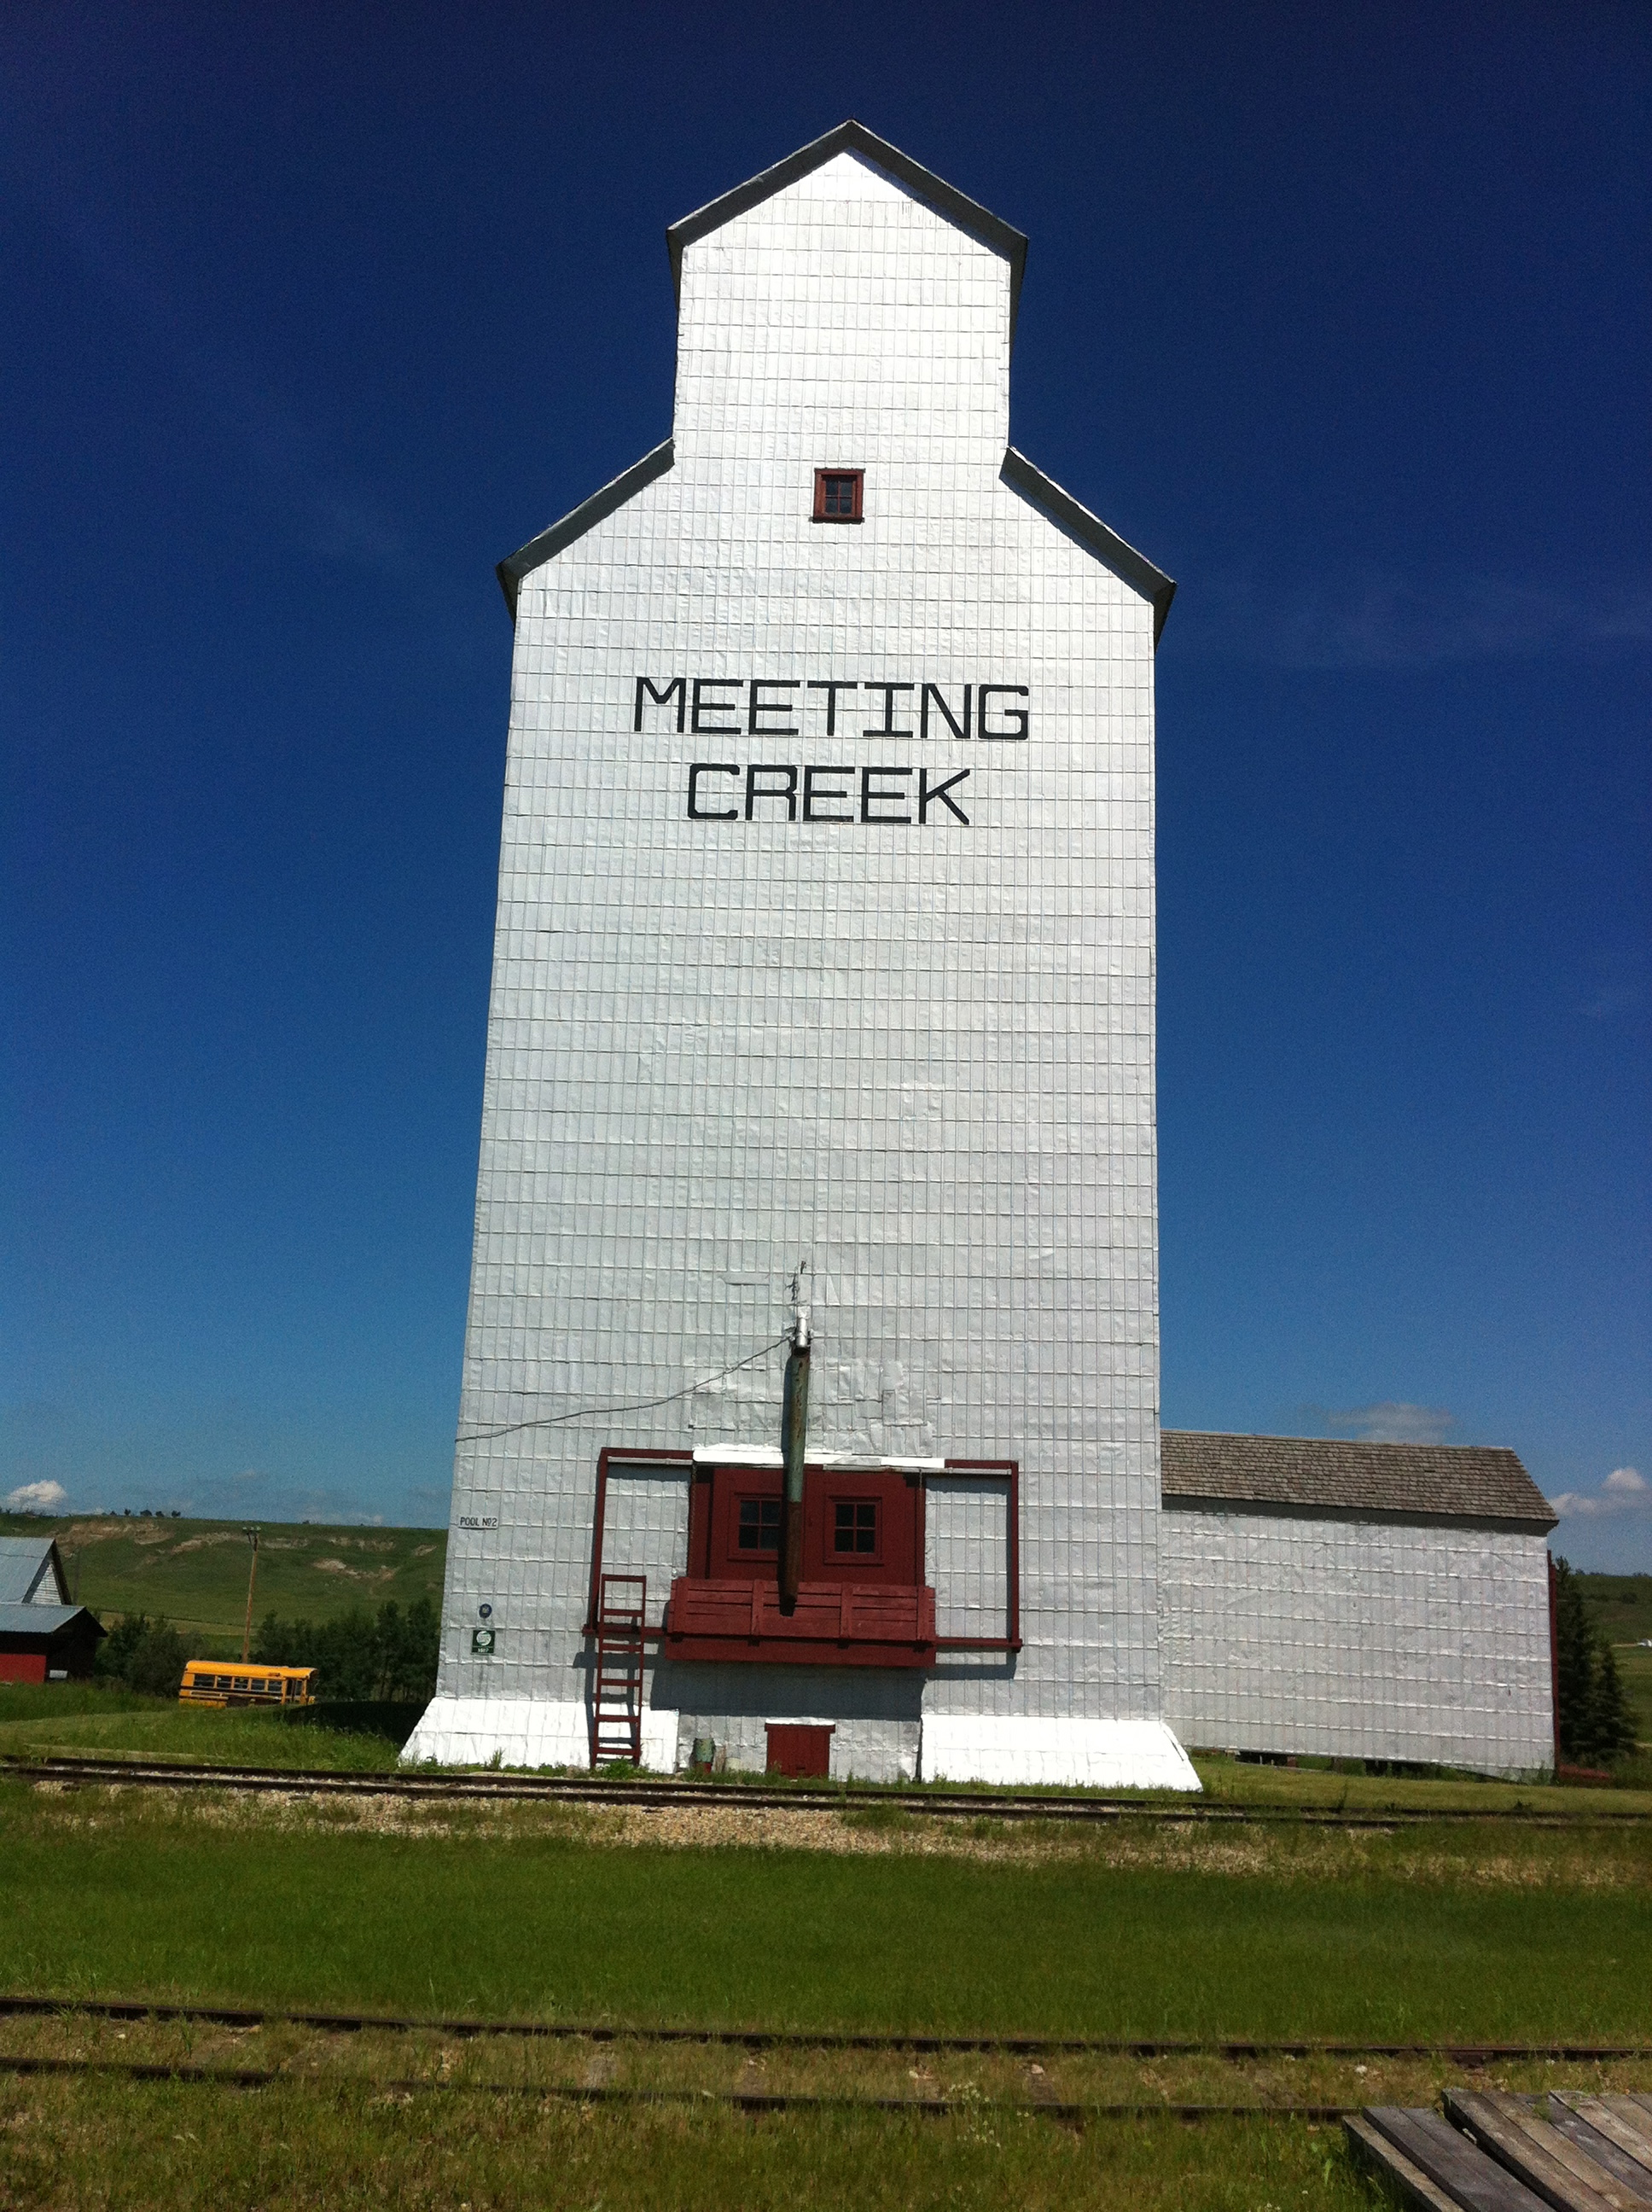 Meeting Creek, Alberta was our encounter with the great spirit of the prairie Grain Elevator.  It was surreal to just be able to explore this perfectly preserved elevator and station with nobody around.